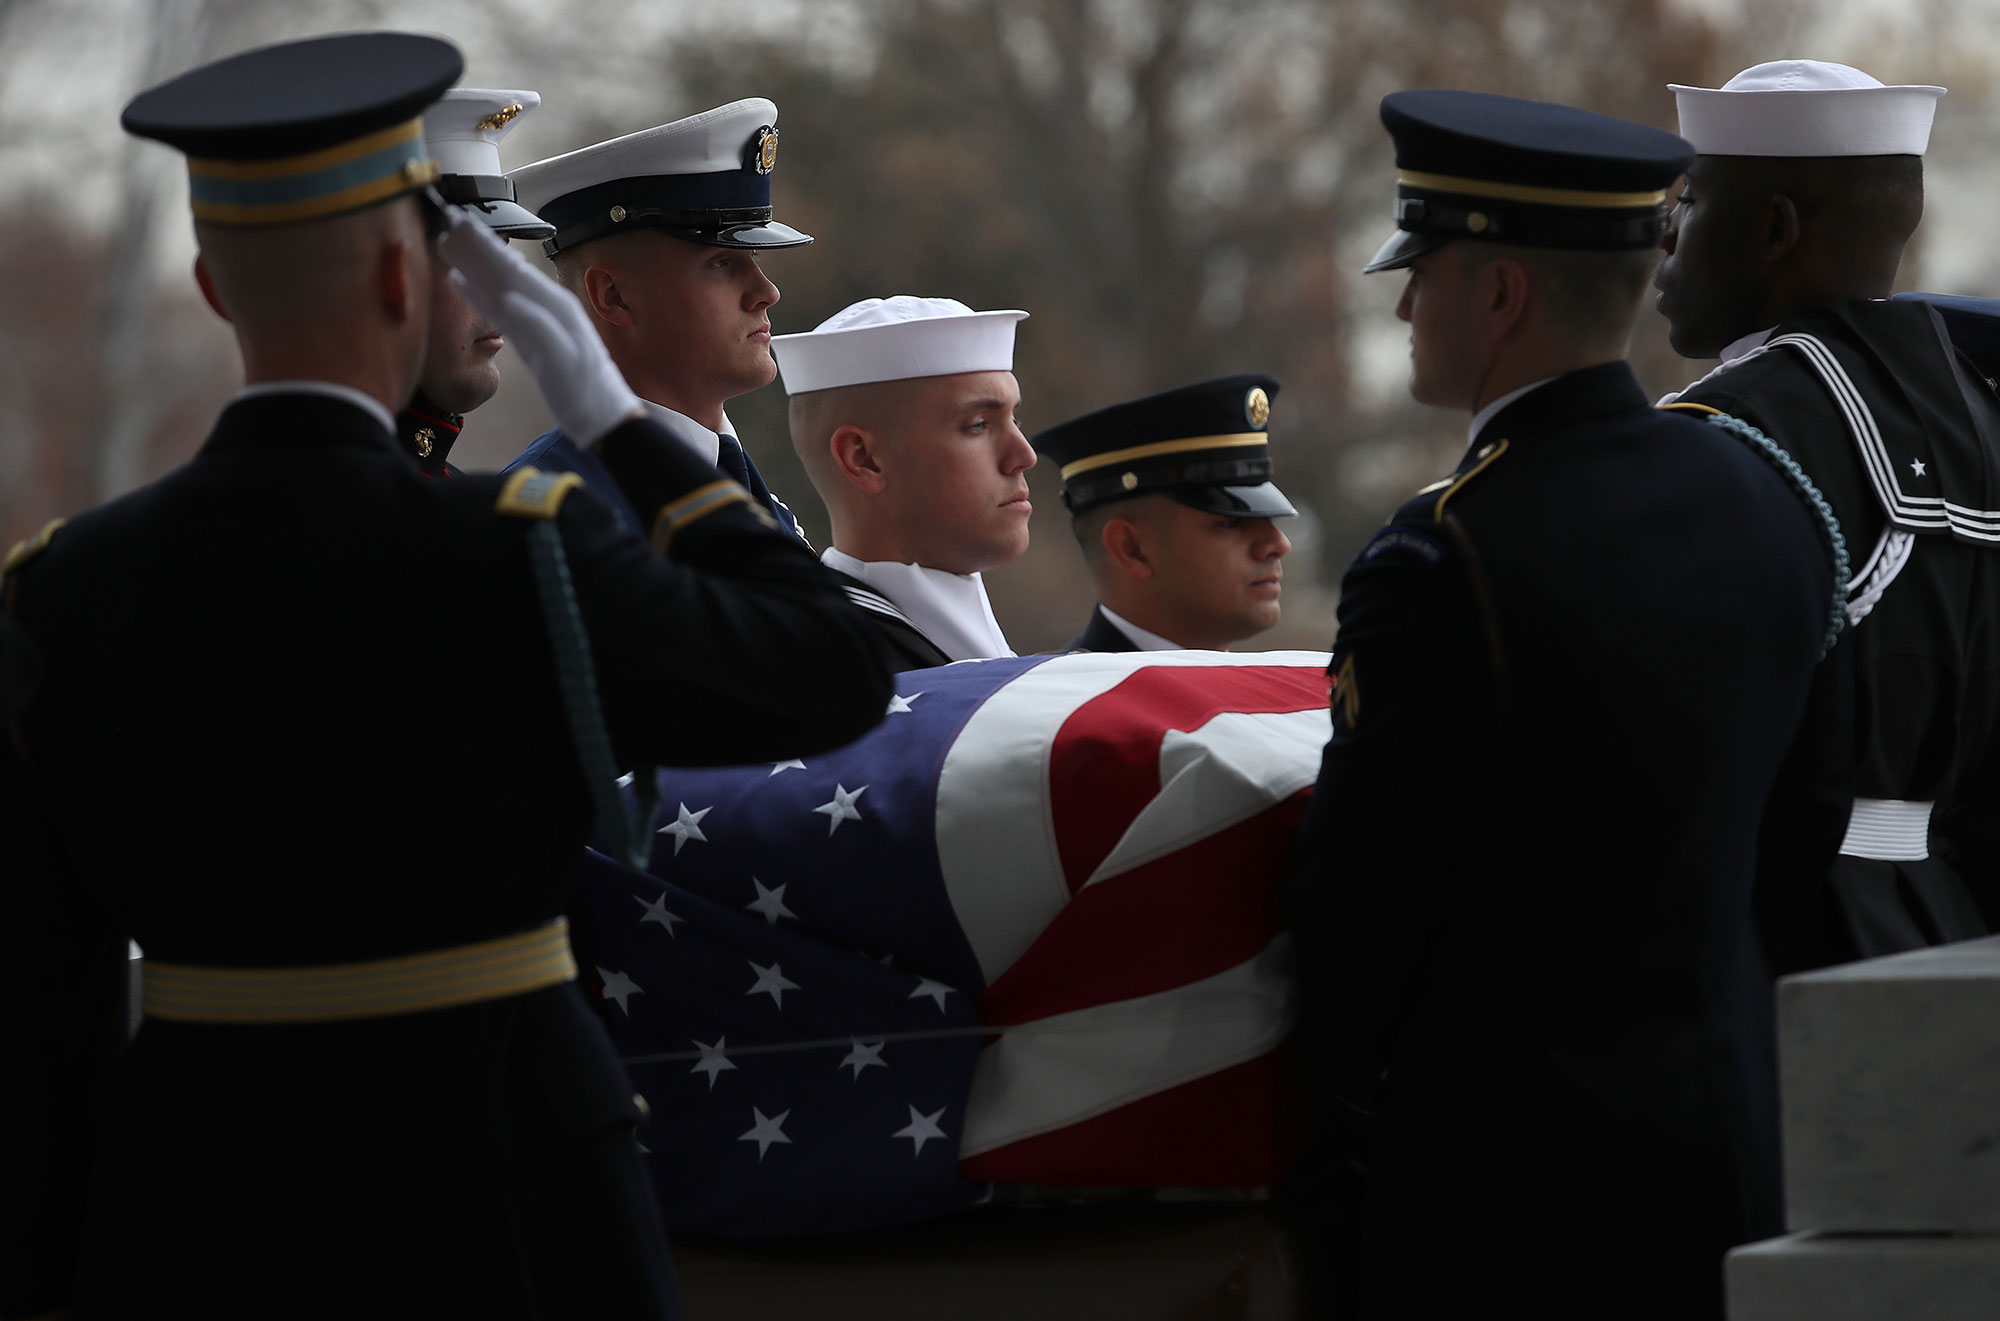 "<div class=""meta image-caption""><div class=""origin-logo origin-image none""><span>none</span></div><span class=""caption-text"">A U.S. military honor guard team carries the flag draped casket of former U.S. President George H. W. Bush from the U.S. Capitol December 5, 2018 in Washington, DC. (Win McNamee/Getty Images)</span></div>"